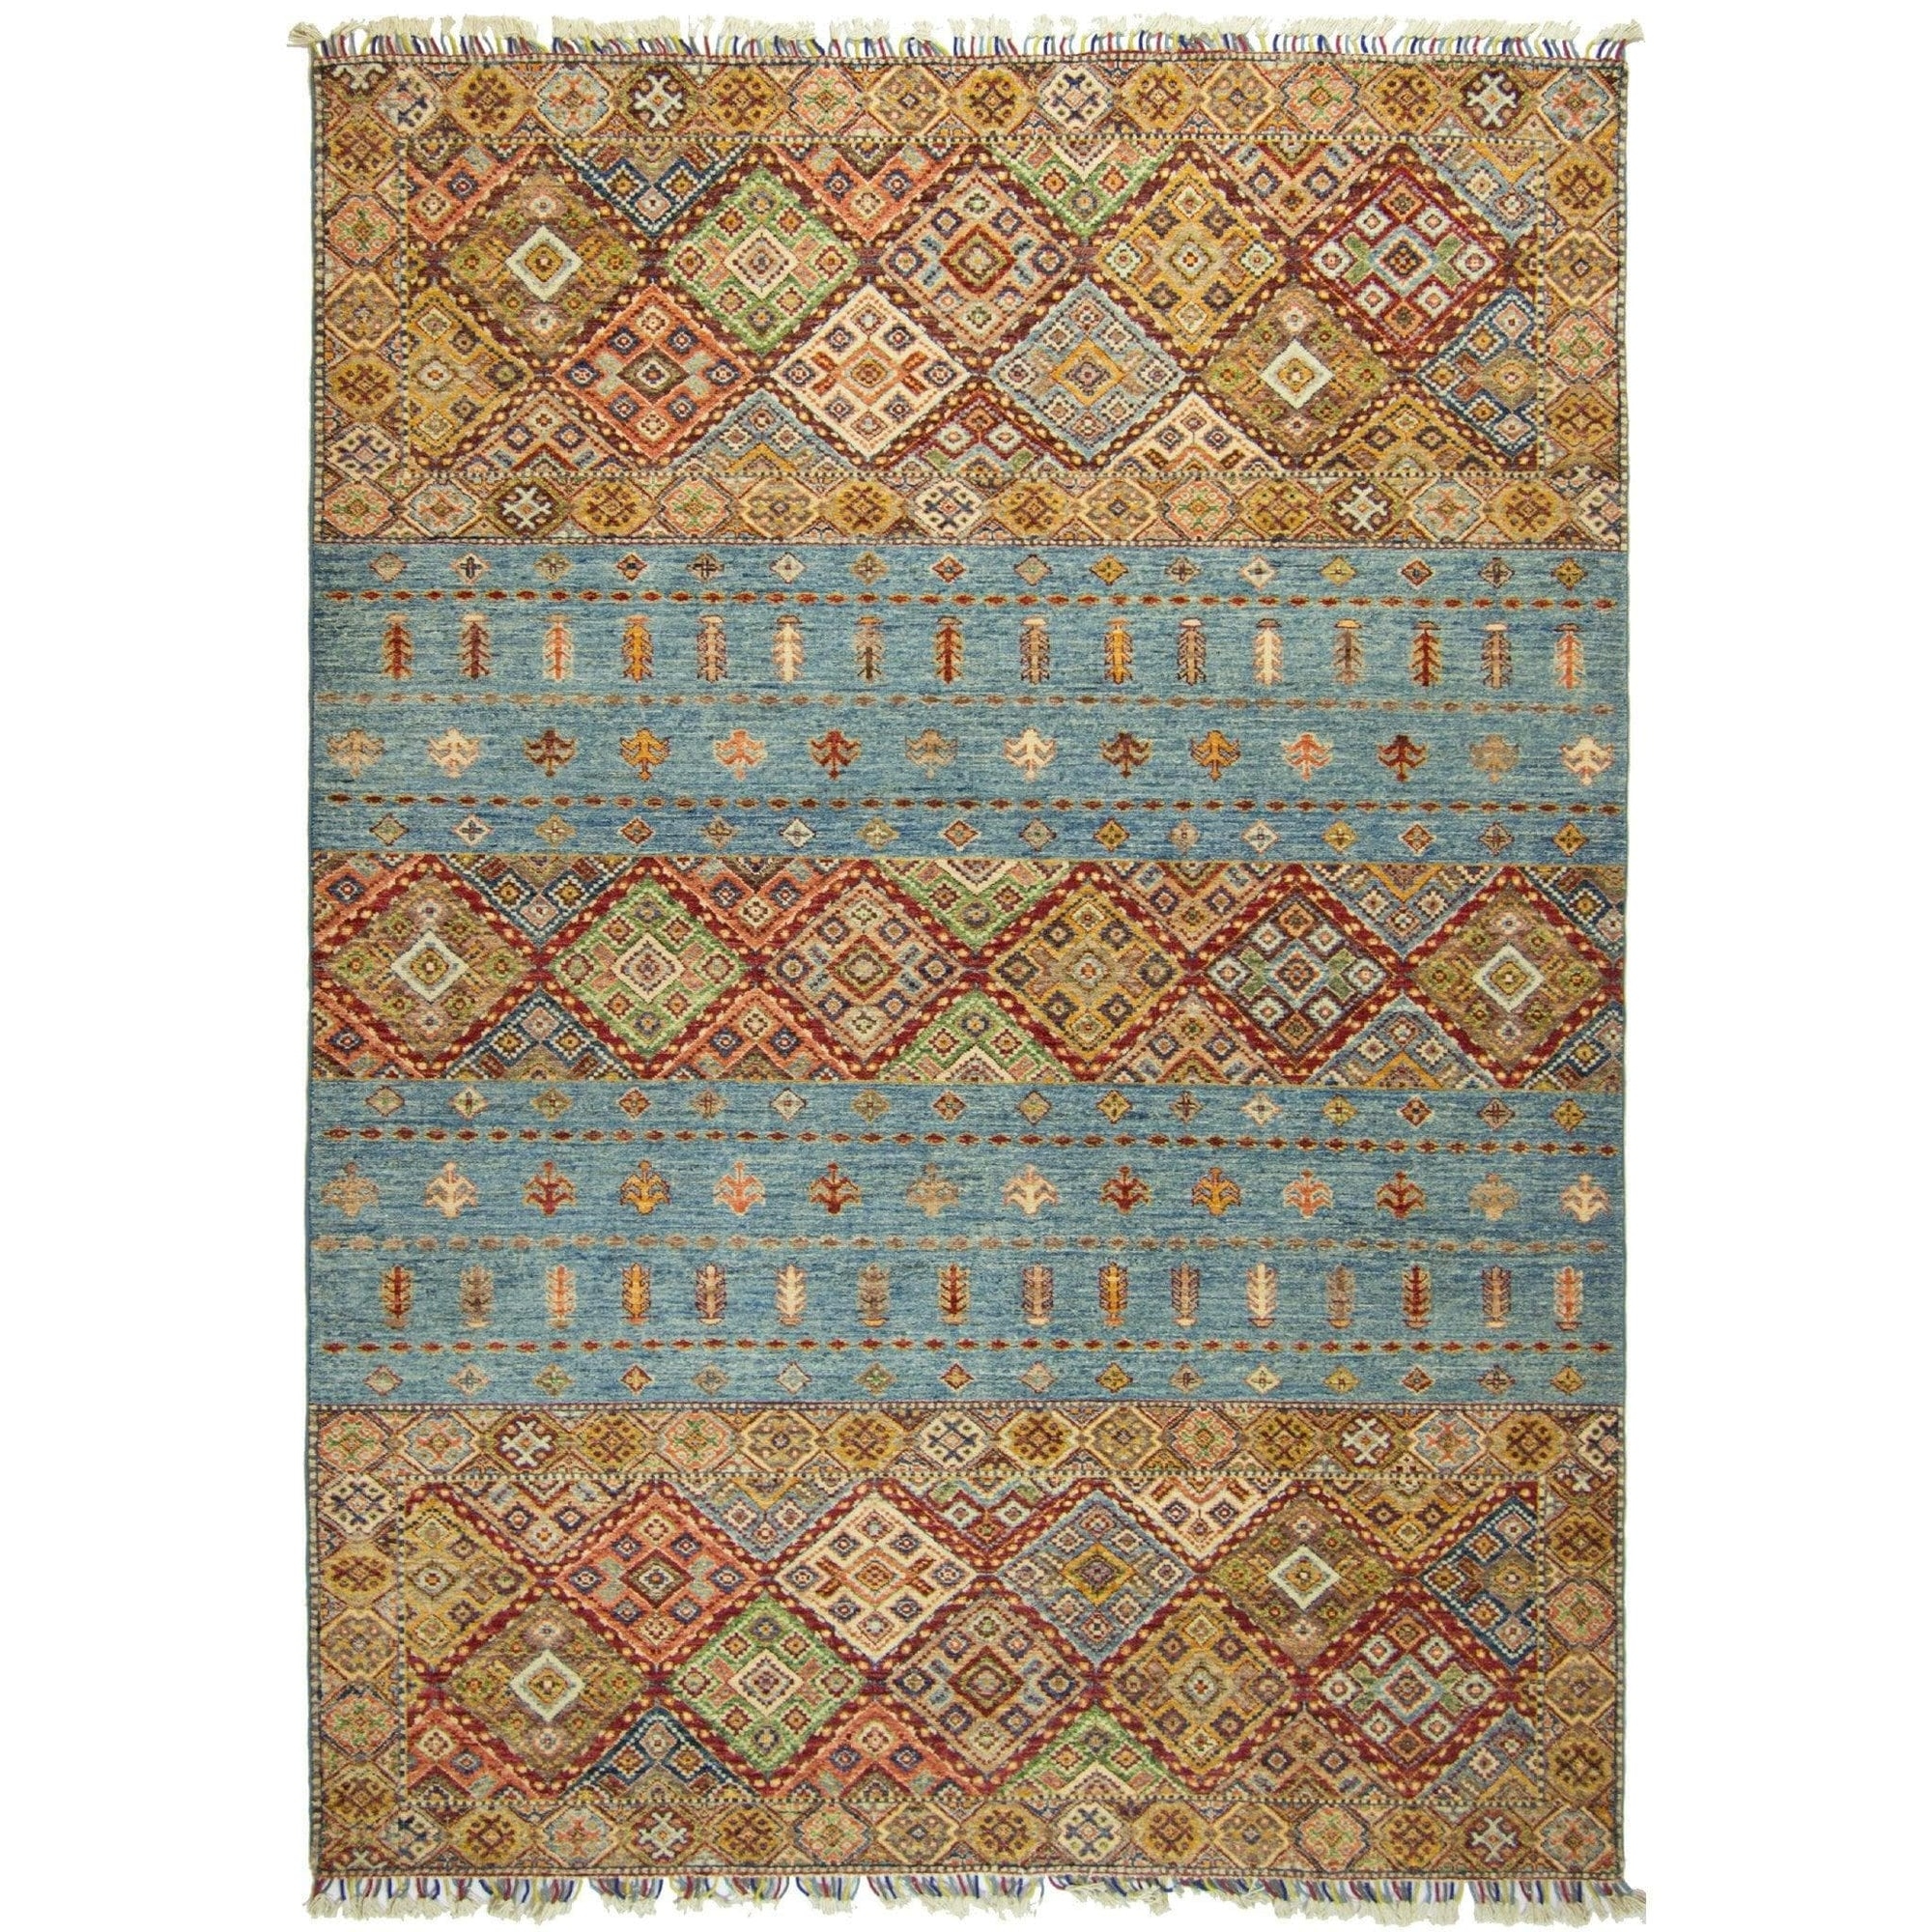 Hand-knotted Khorjin Wool Rug 173cm x 242cm Persian-Rug | House-of-Haghi | NewMarket | Auckland | NZ | Handmade Persian Rugs | Hand Knotted Persian Rugs